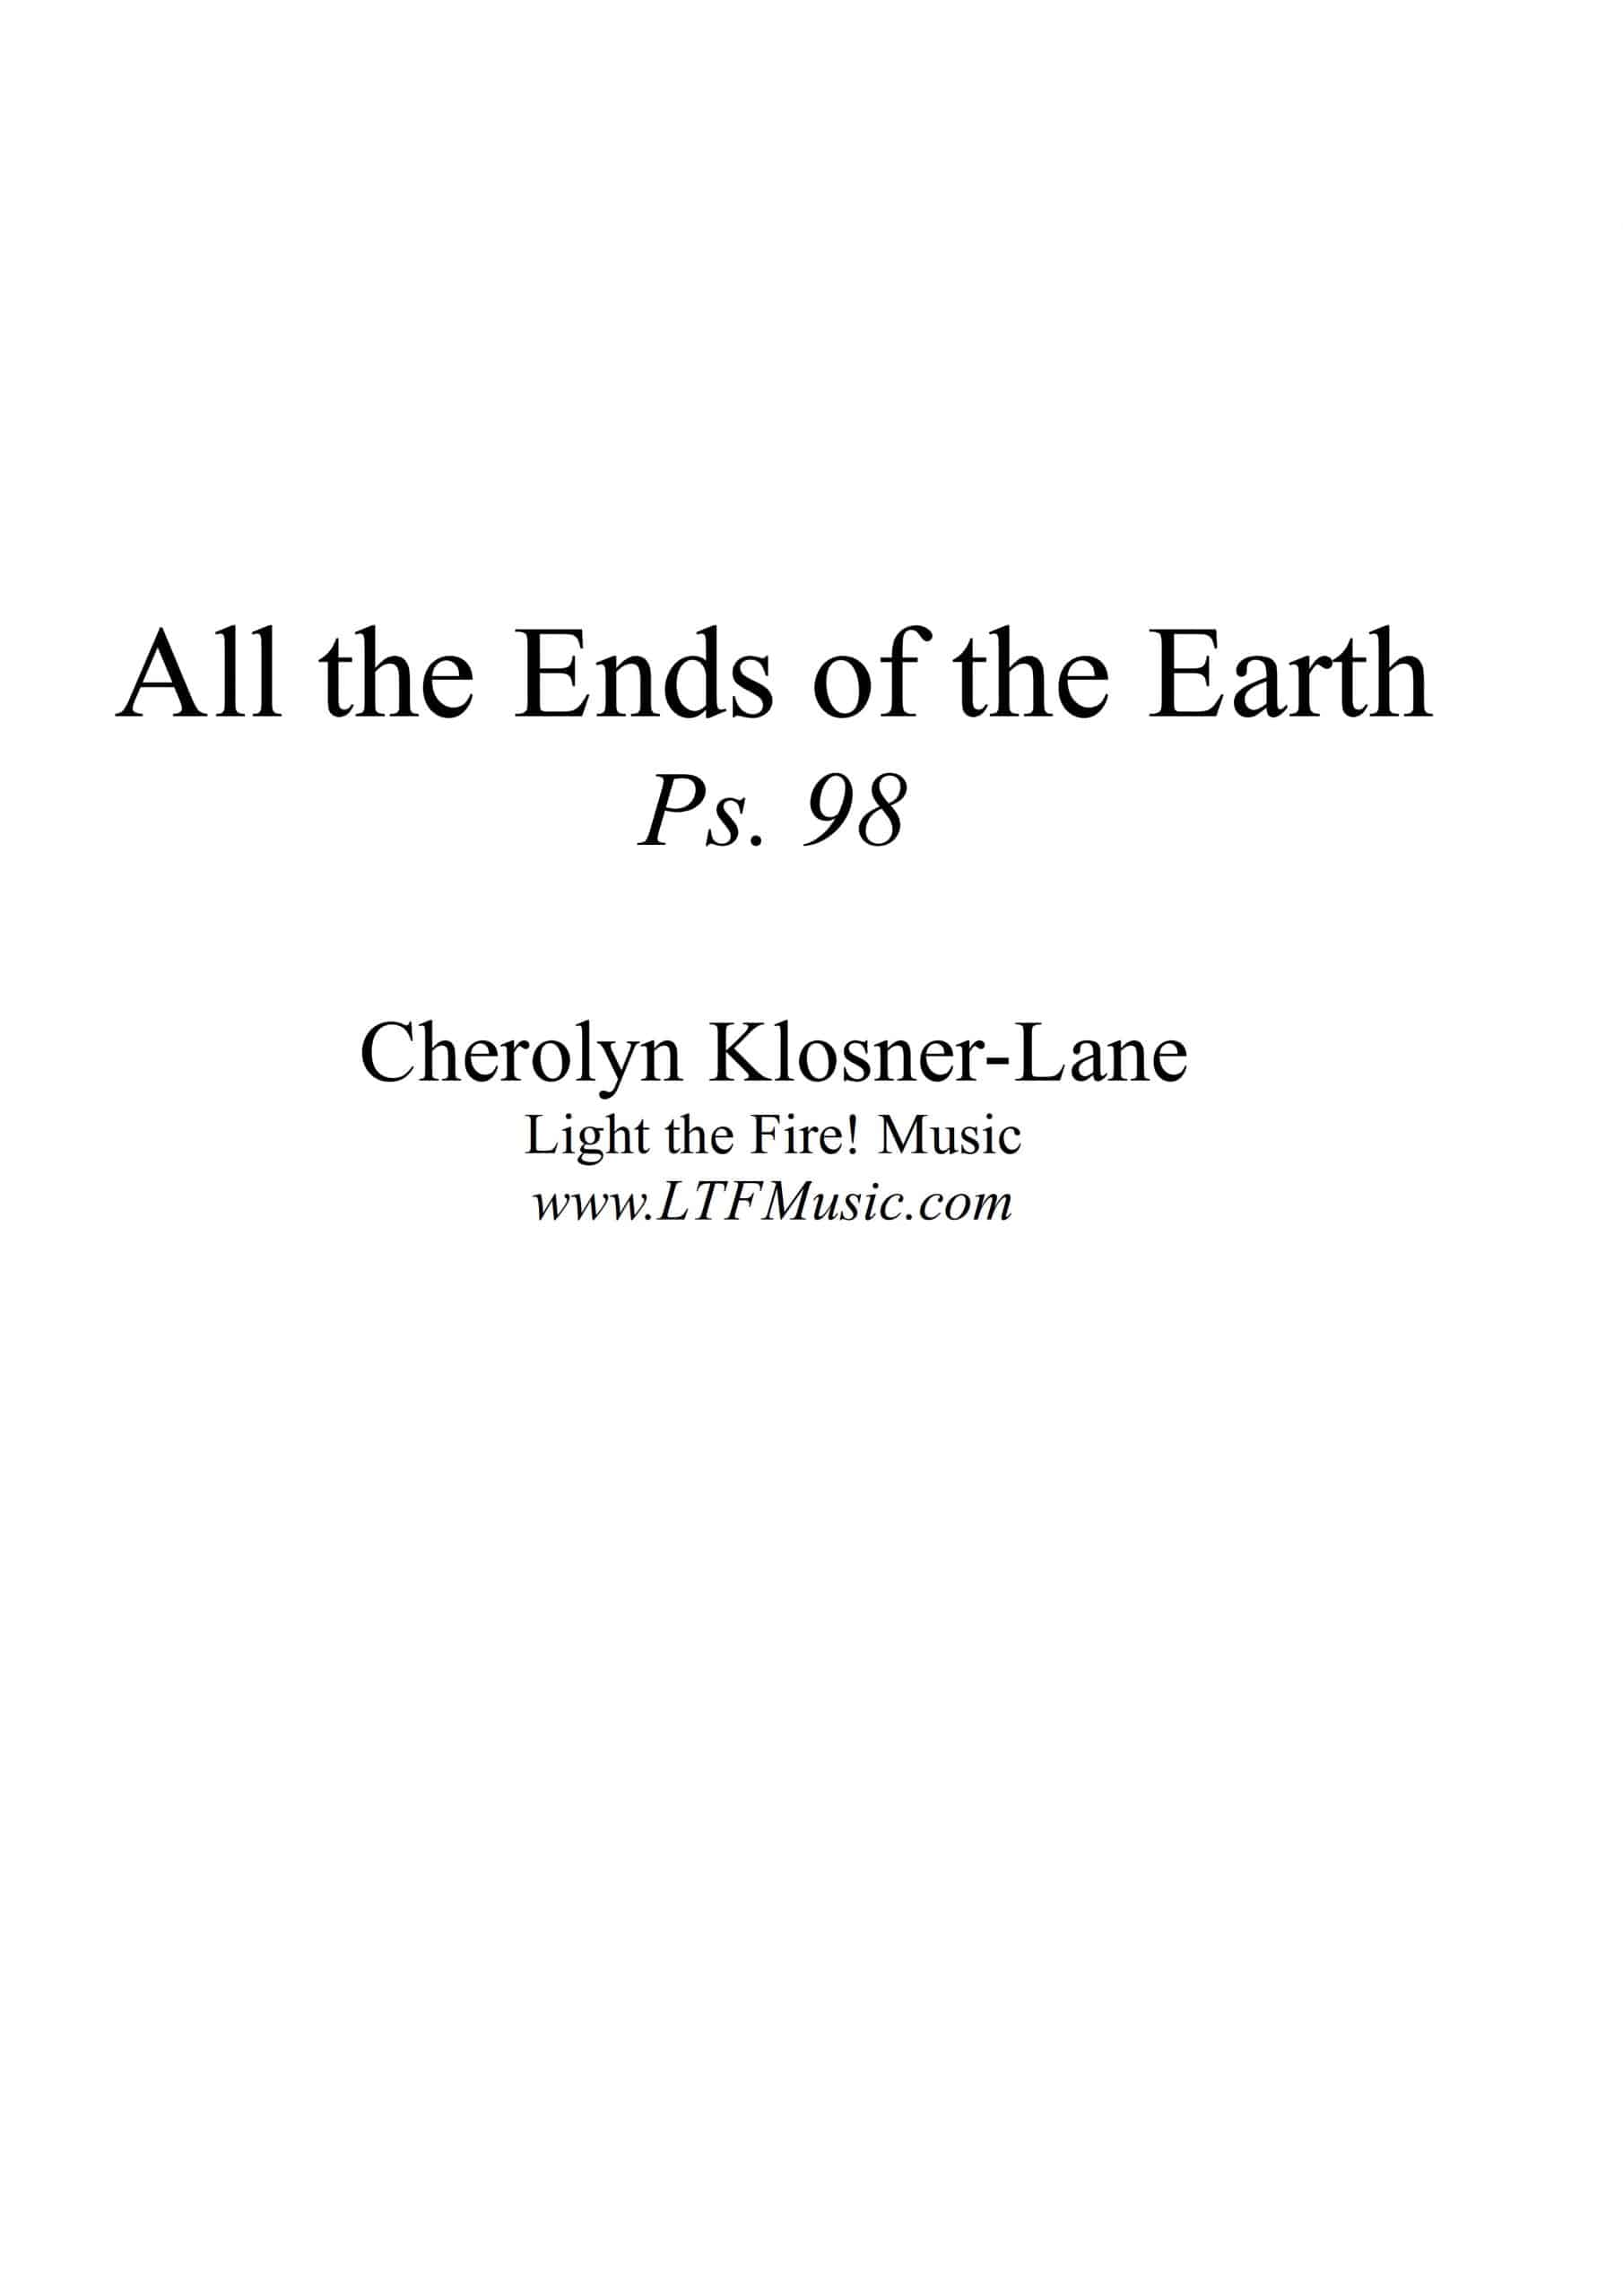 All the Ends of the Earth CompletePDF scaled